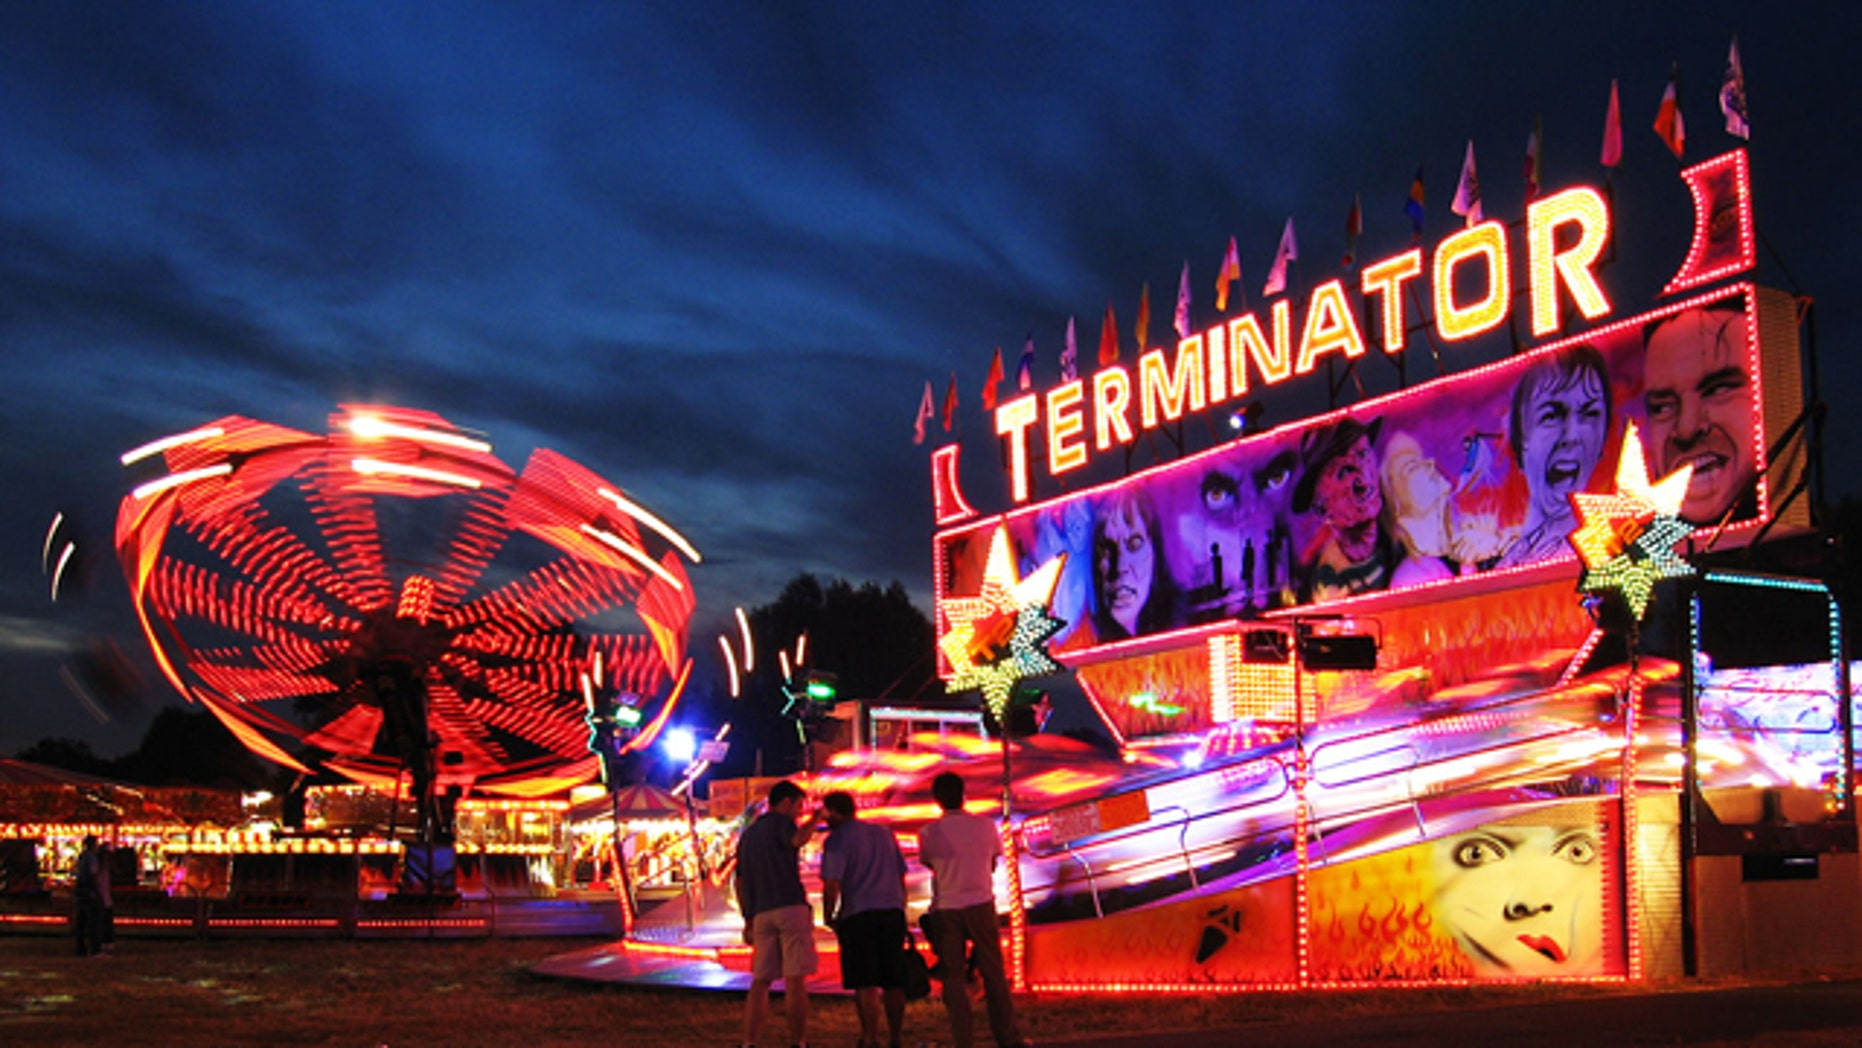 Rides glow at night at the Cambridge Midsummer Fair amusement park.